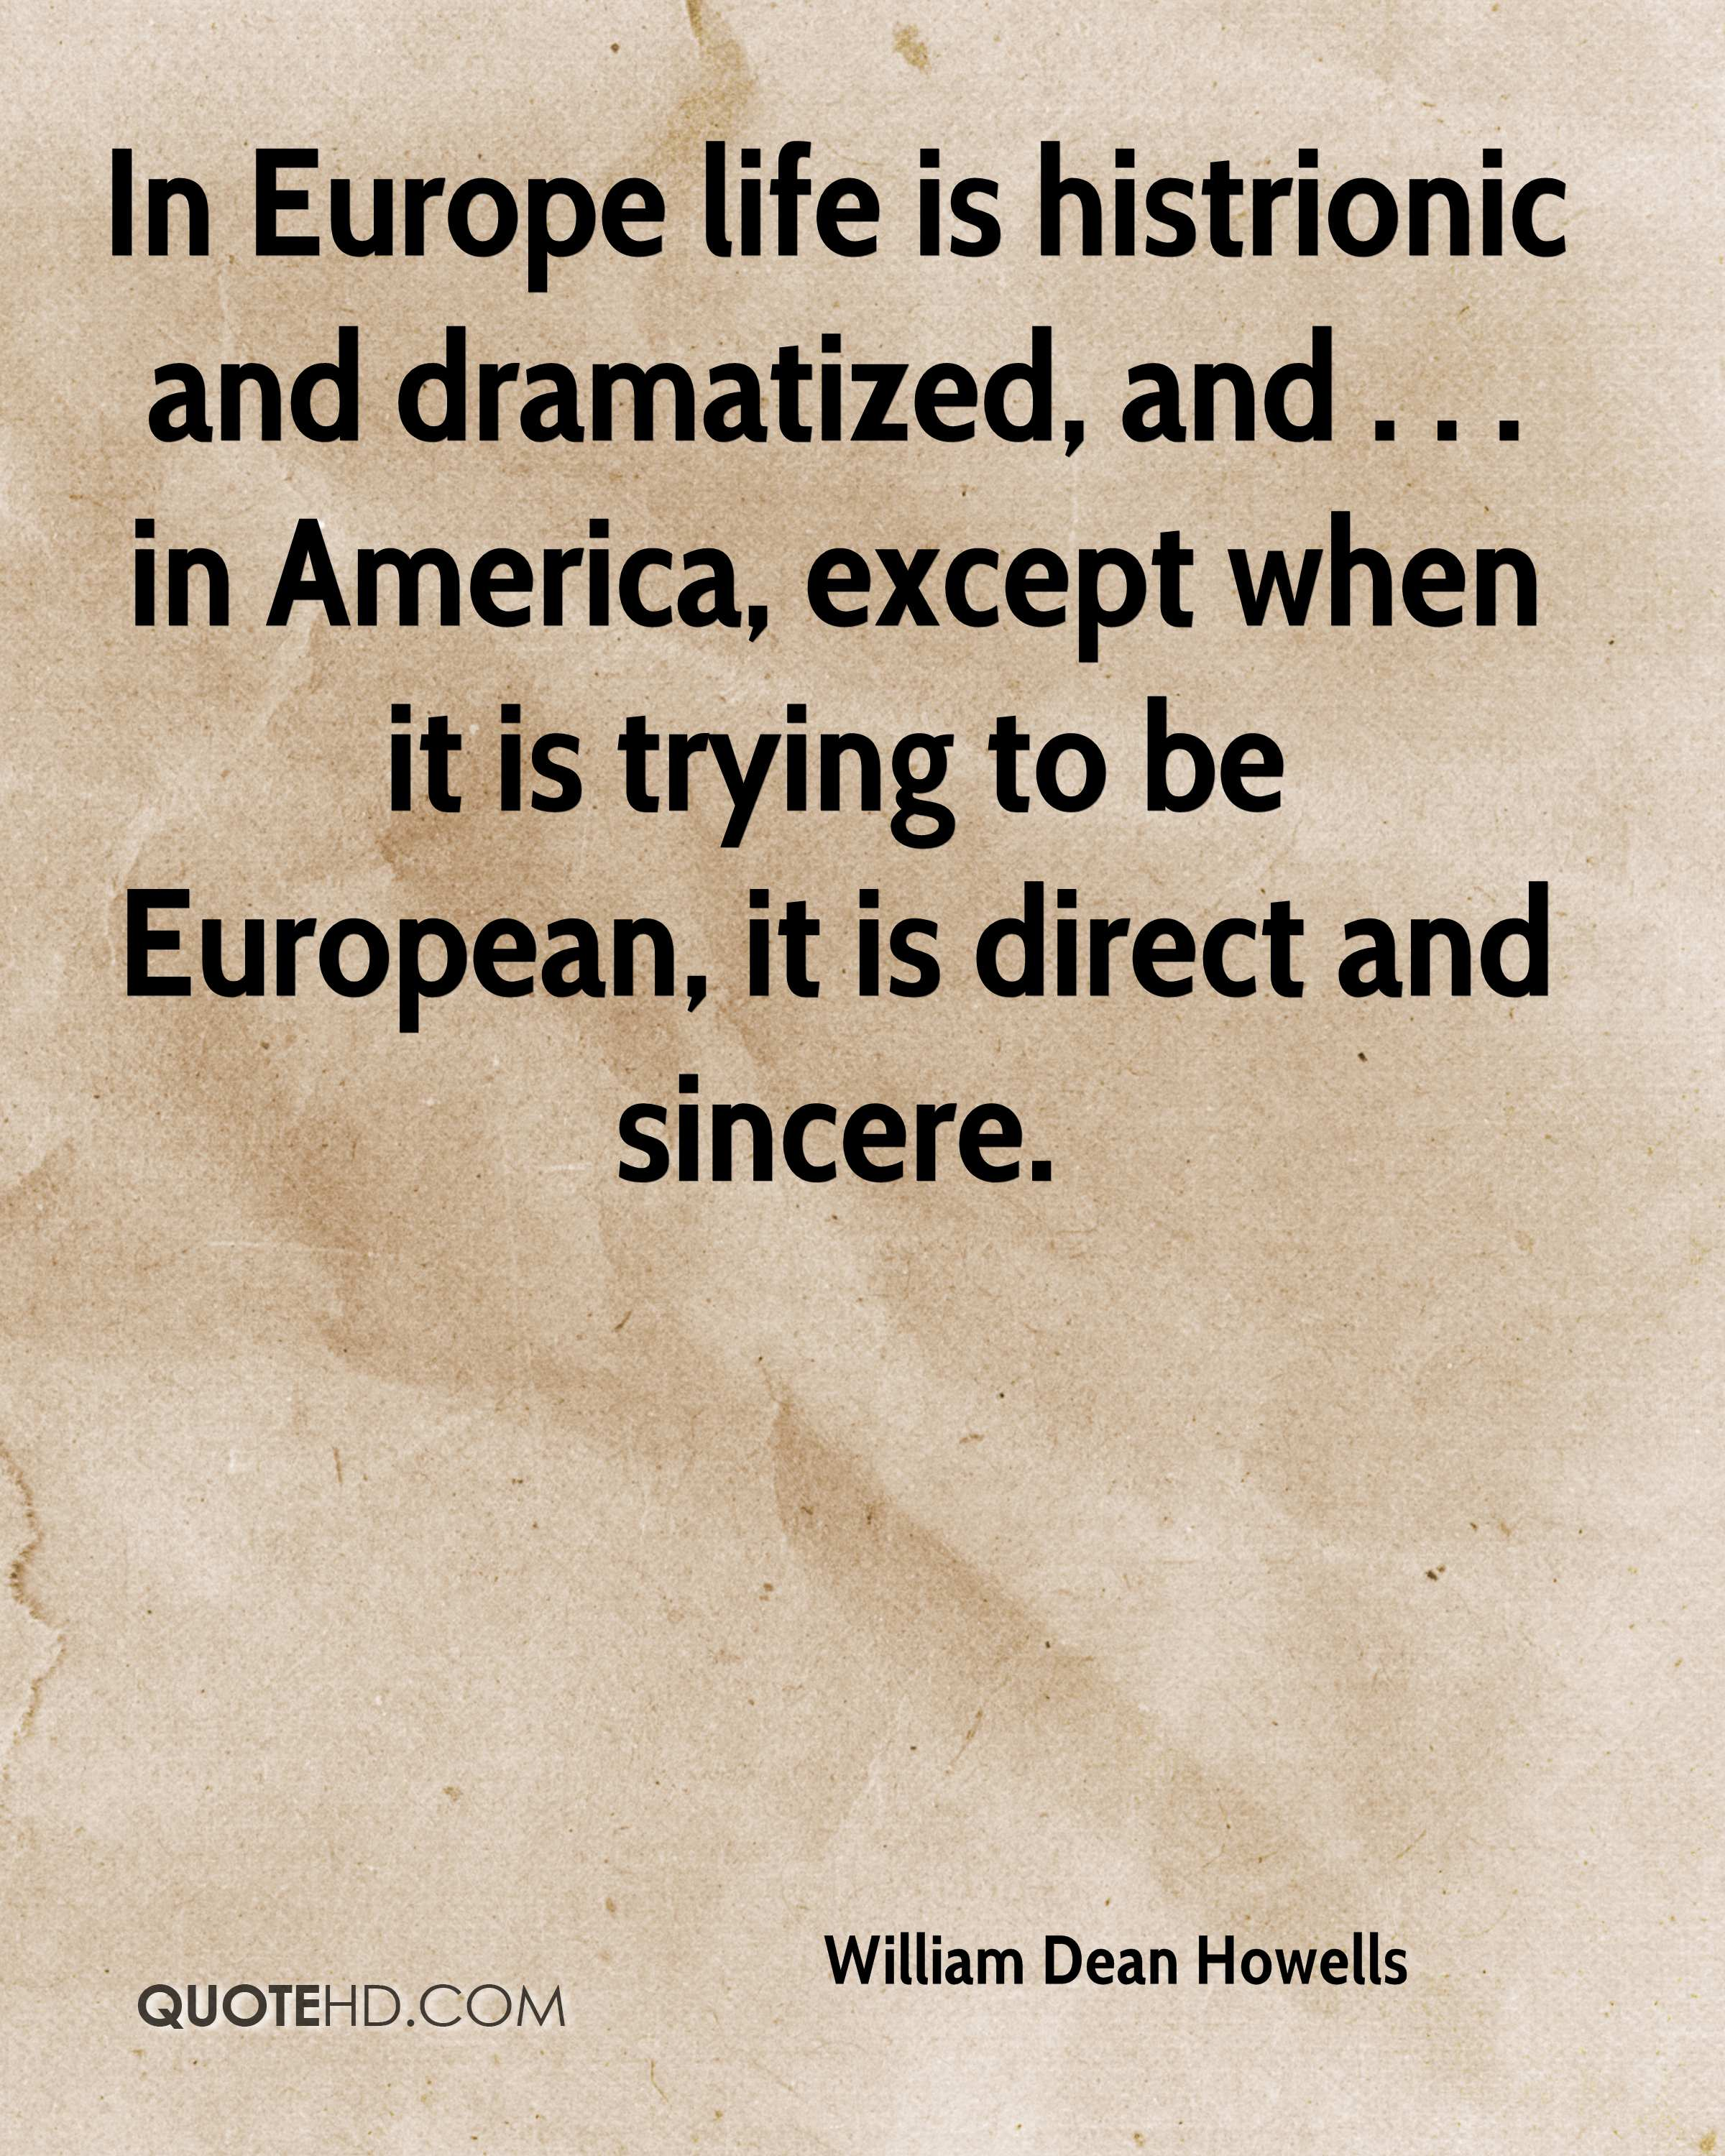 In Europe life is histrionic and dramatized, and . . . in America, except when it is trying to be European, it is direct and sincere.